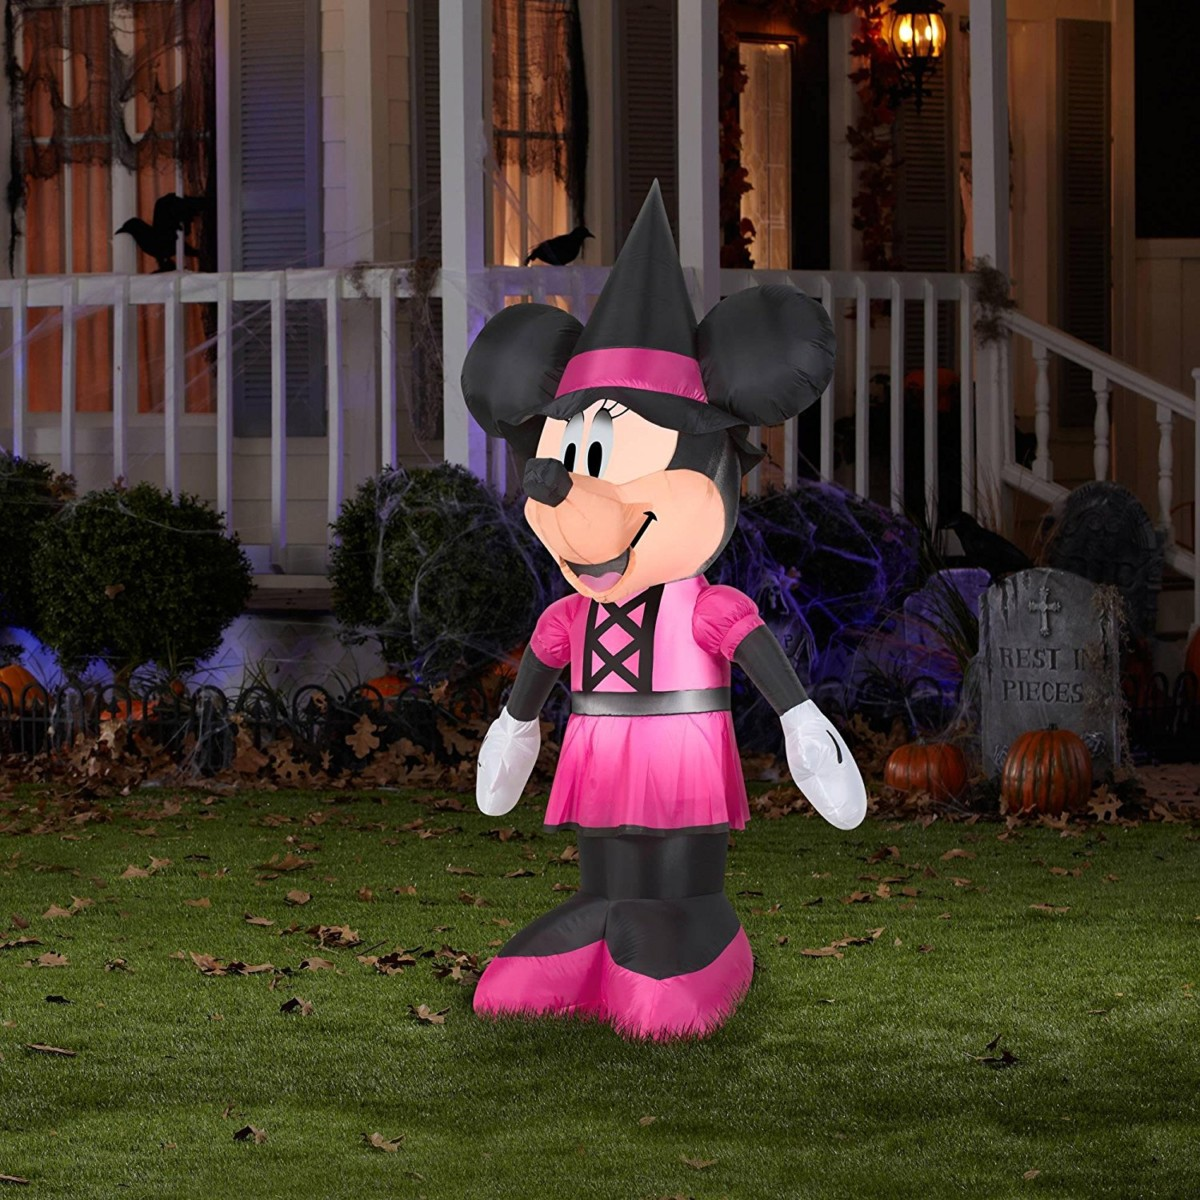 Disney Halloween Decorations For Your Home 5